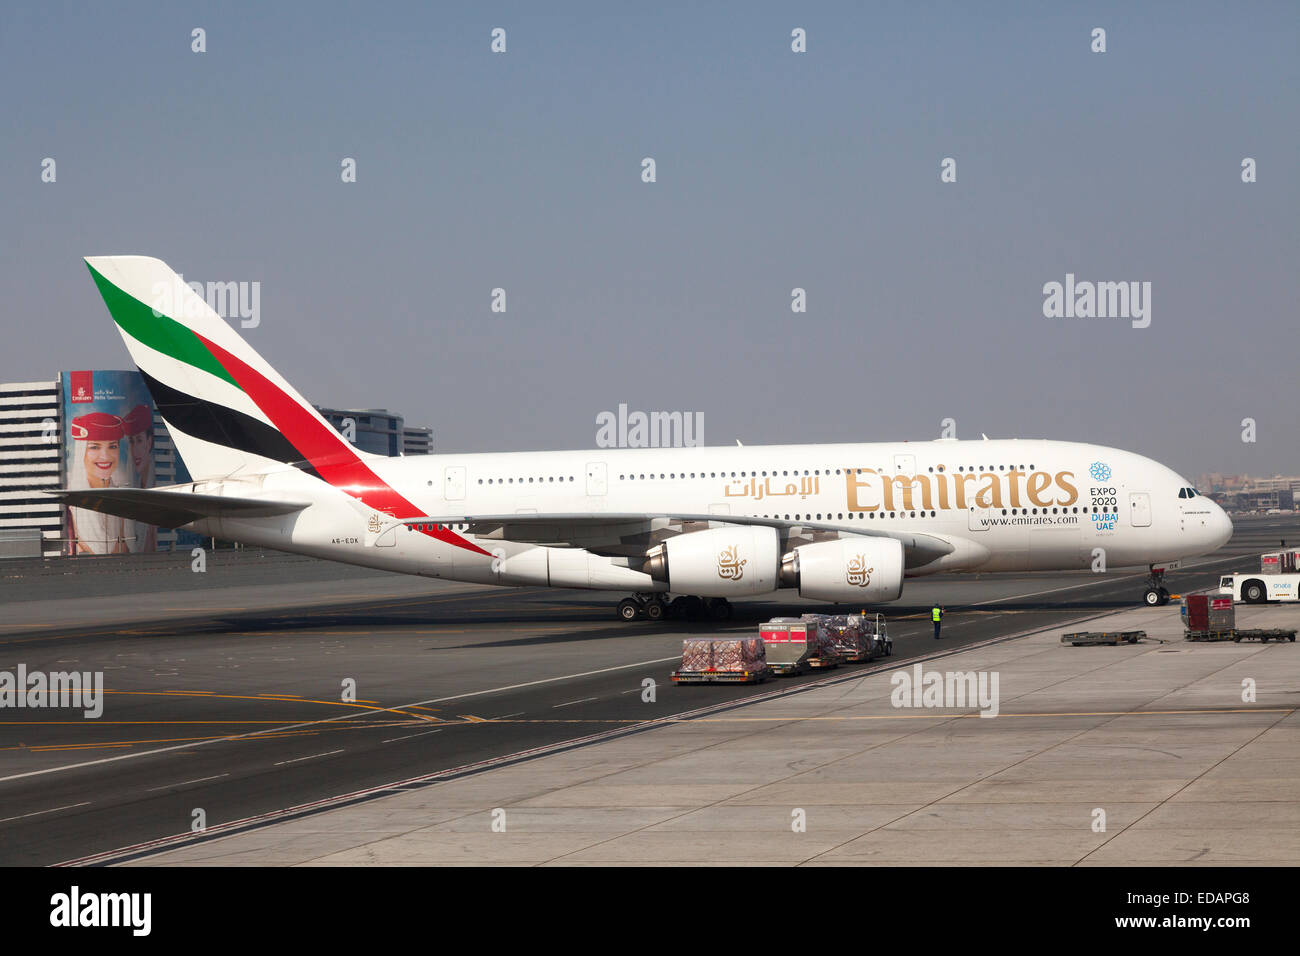 Aeroplane of Emirates airline at Schiphol airport in Holland - Stock Image